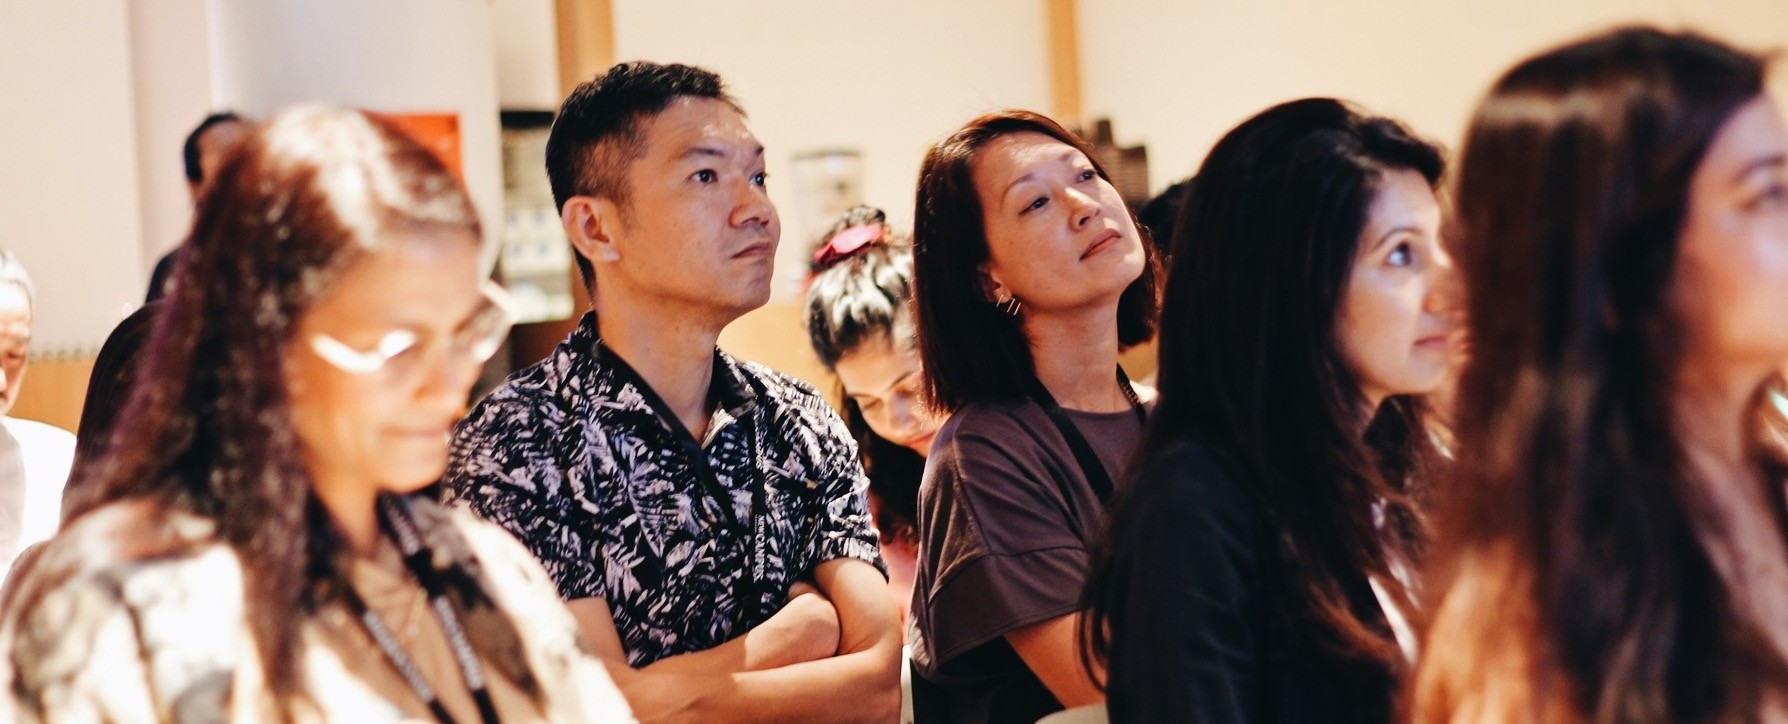 Attendees of the FastFwd Festival in 2019 listening to a speaker